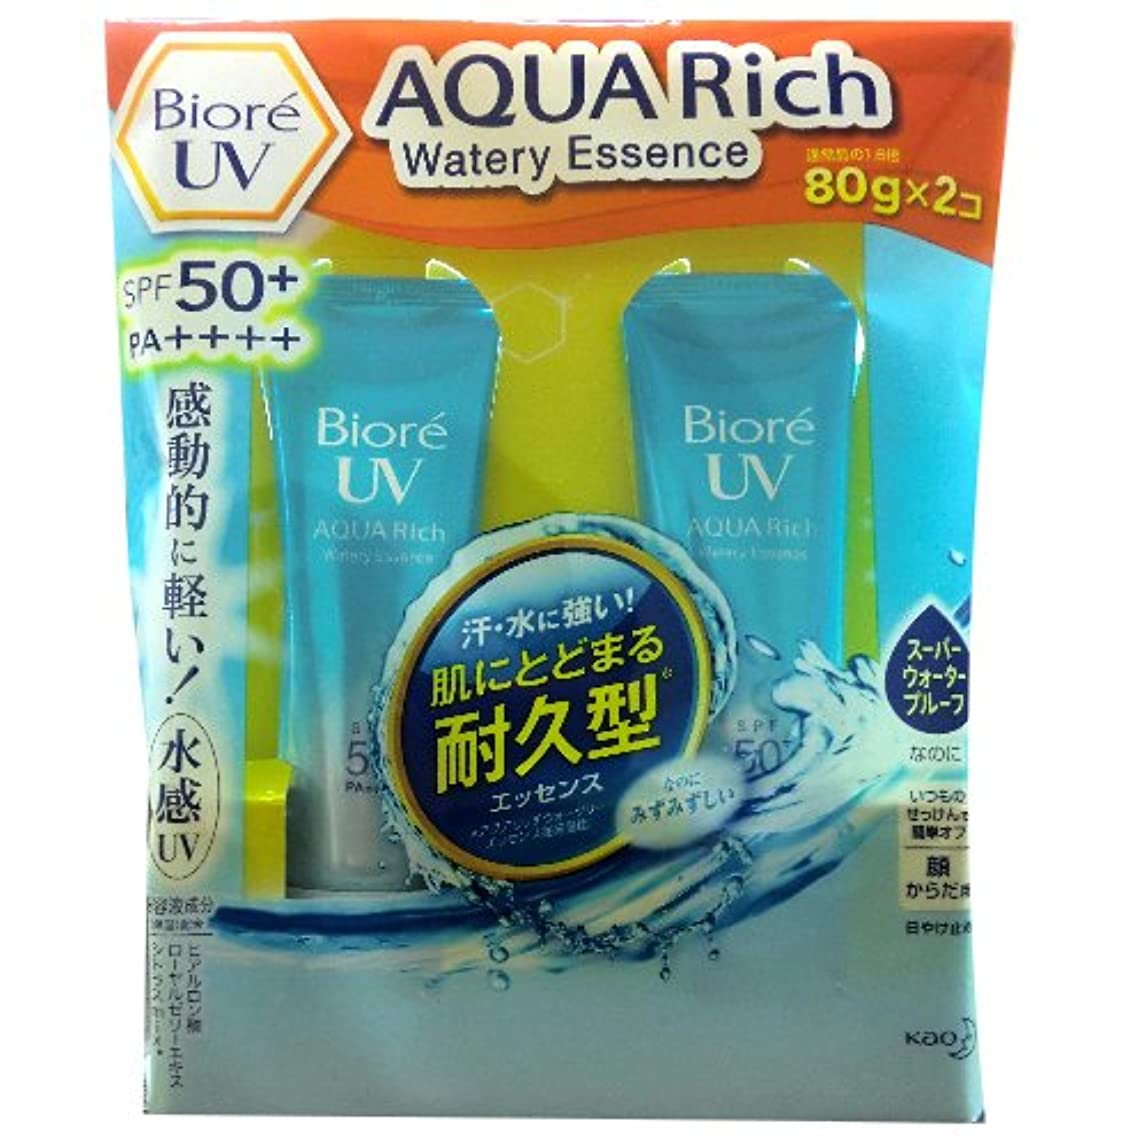 気候歴史飛行機Biore UV AQUA Rich Watery Essence 80g×2コ